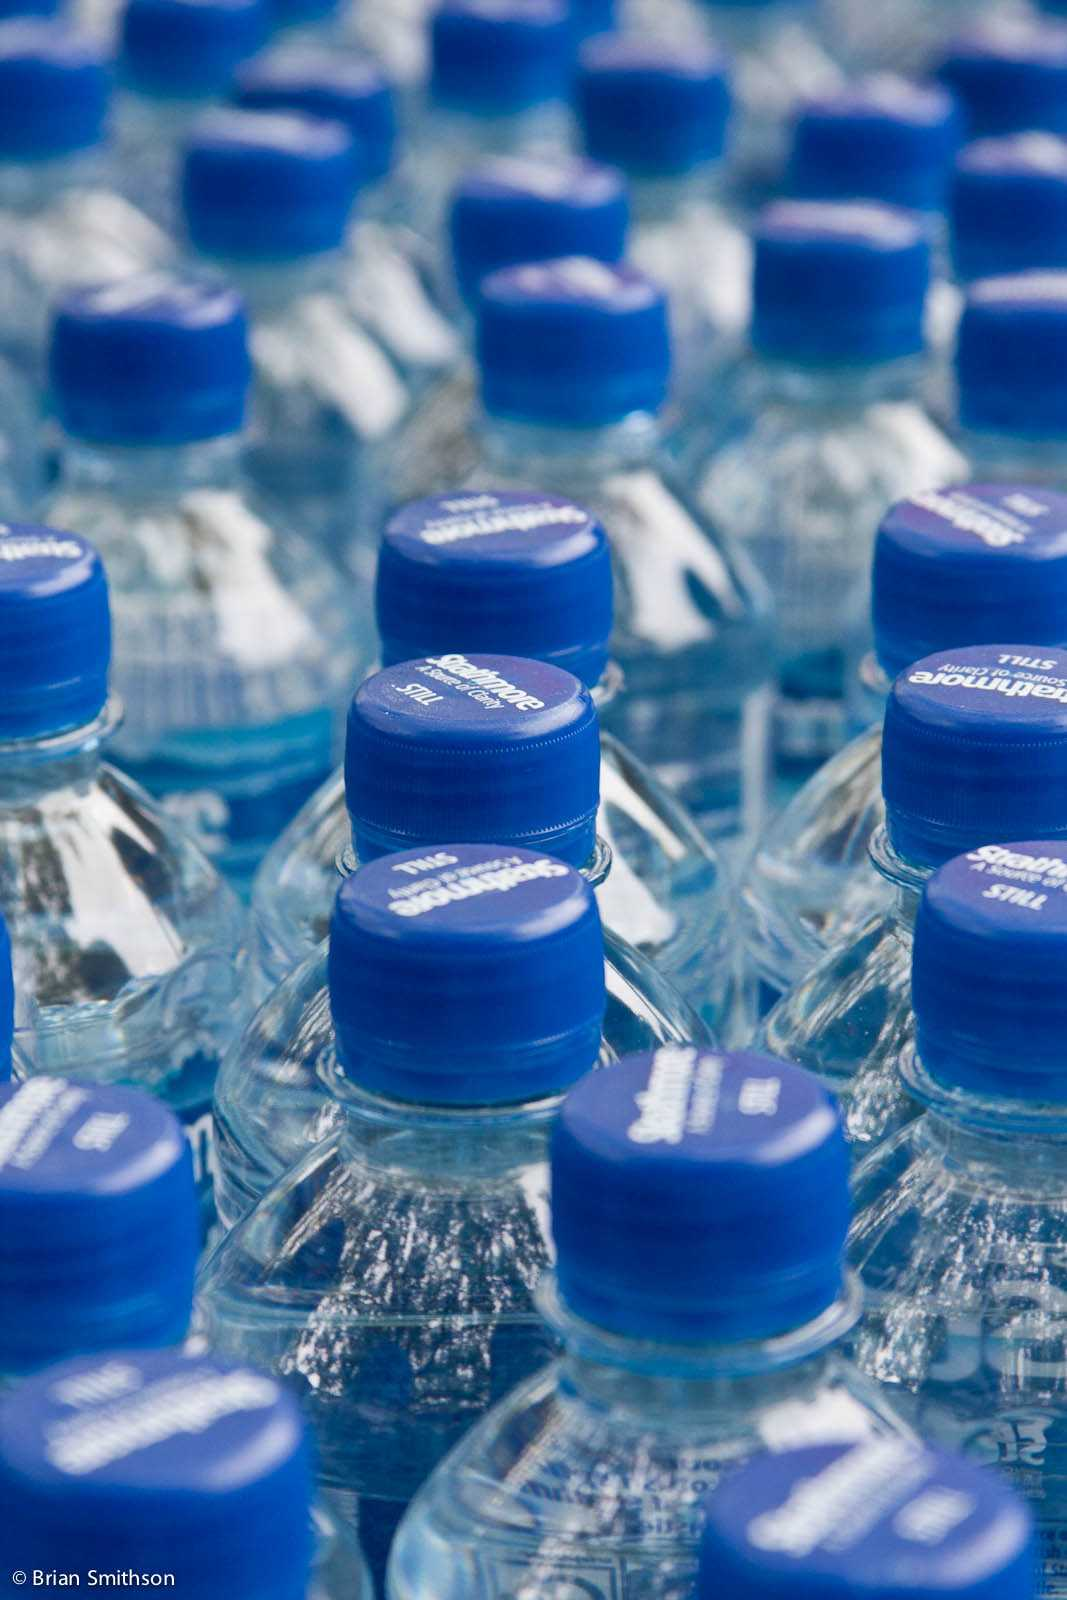 the purchase of bottled water